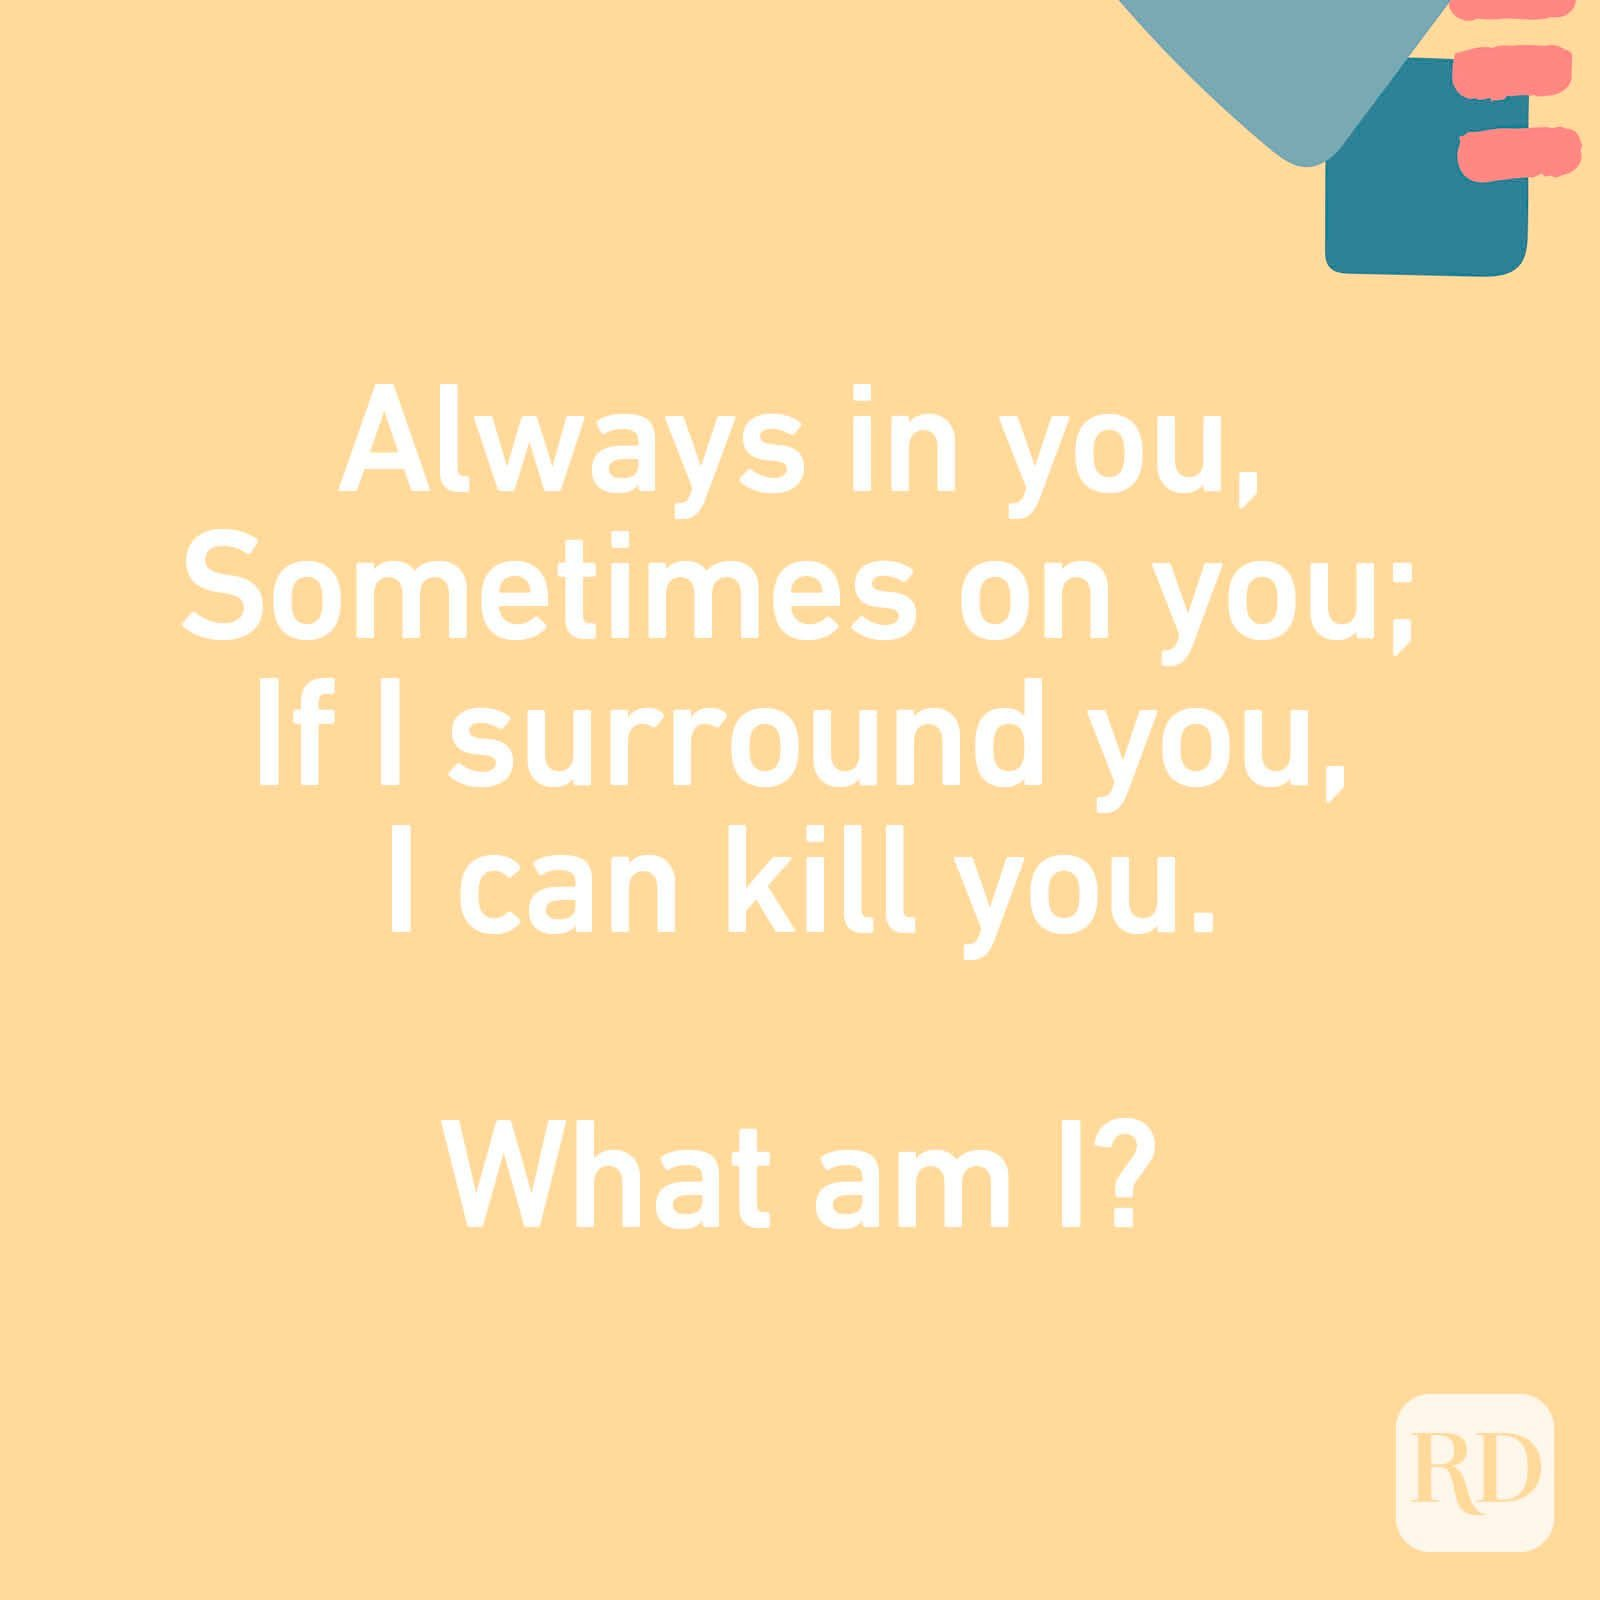 Always in you, Sometimes on you; If I surround you, I can kill you. What am I?